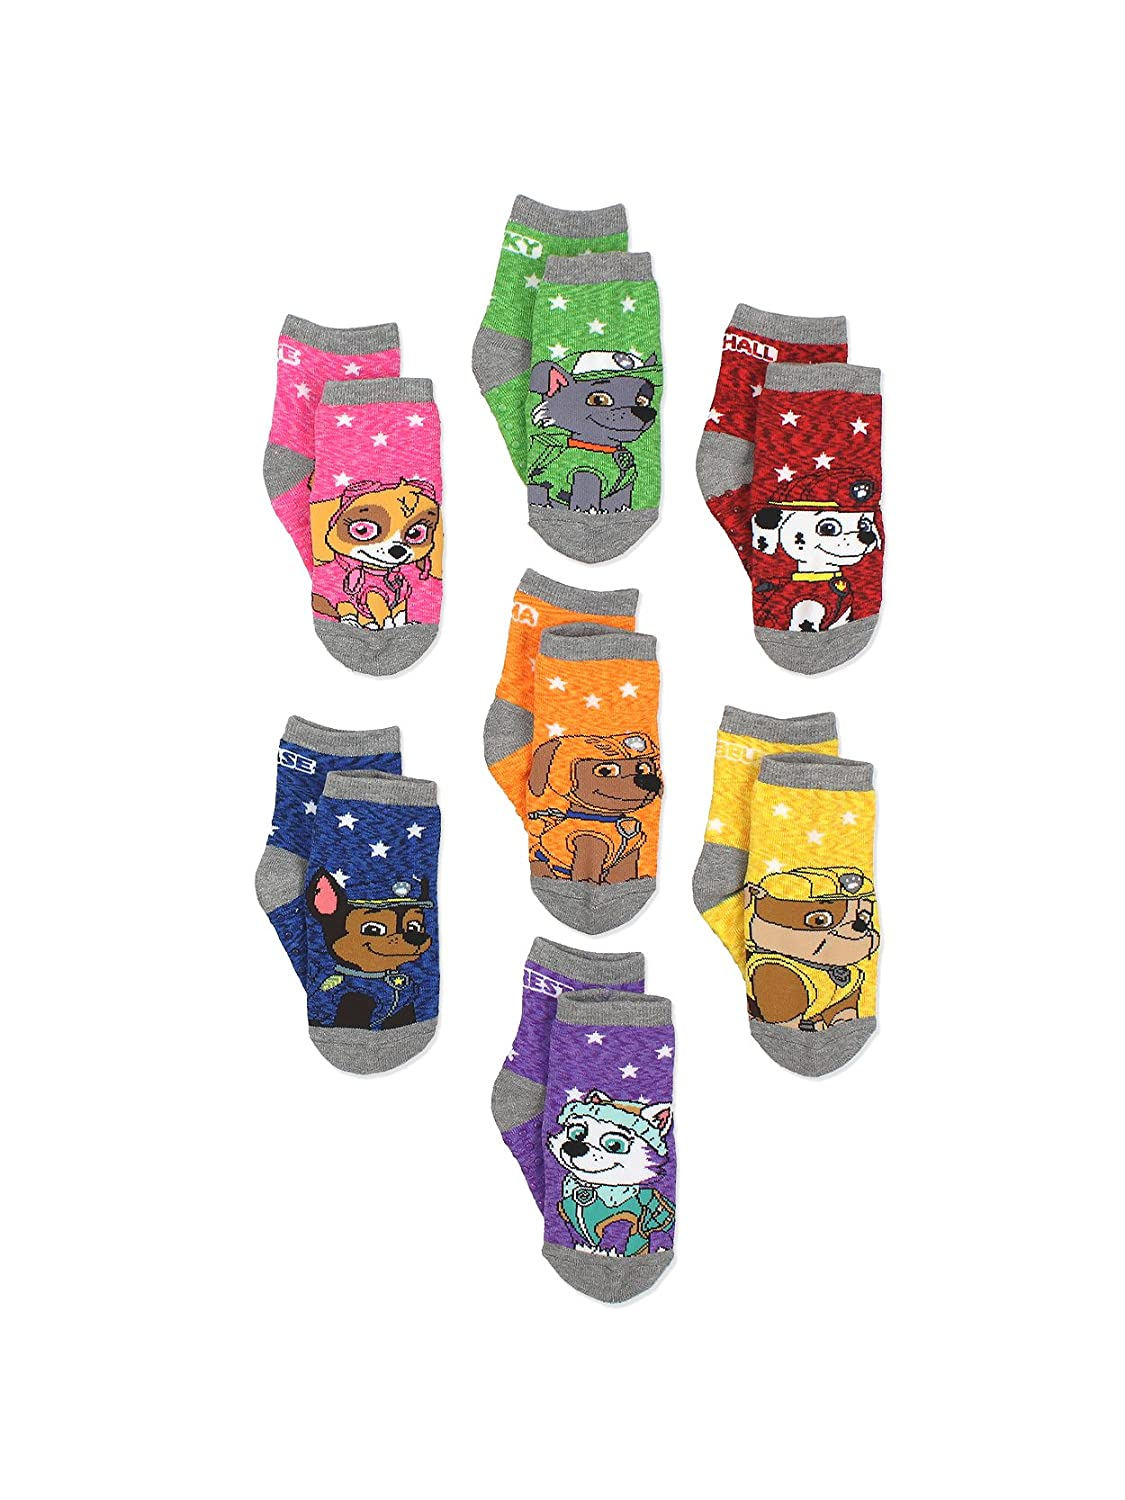 Paw Patrol Boys Girls 7 pack Socks with Grippers (Toddler/Little Kid) manufacturer